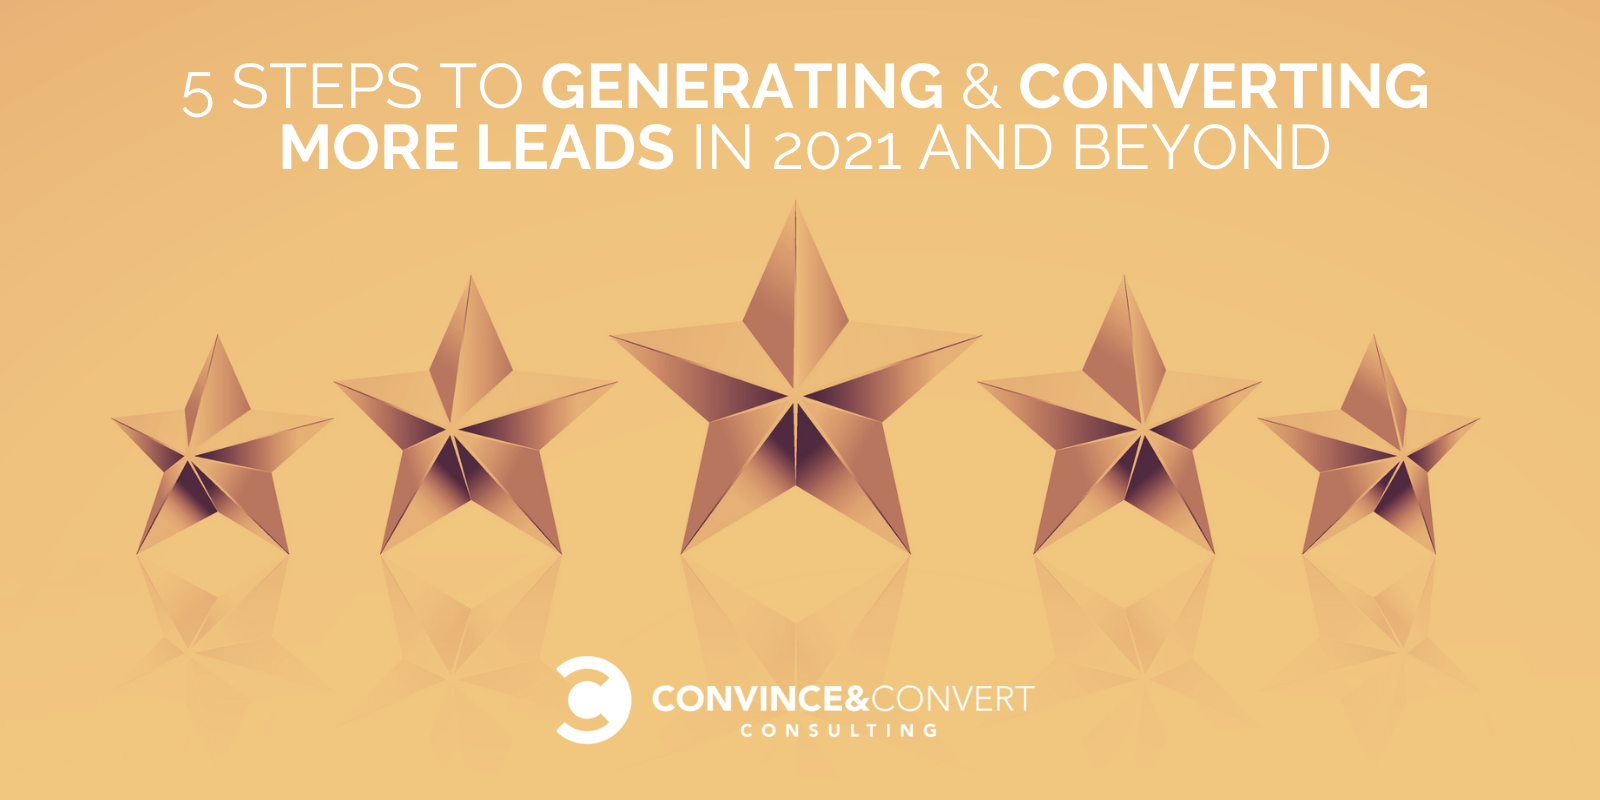 Five Steps to Generating & Converting More Leads in 2021 and Beyond